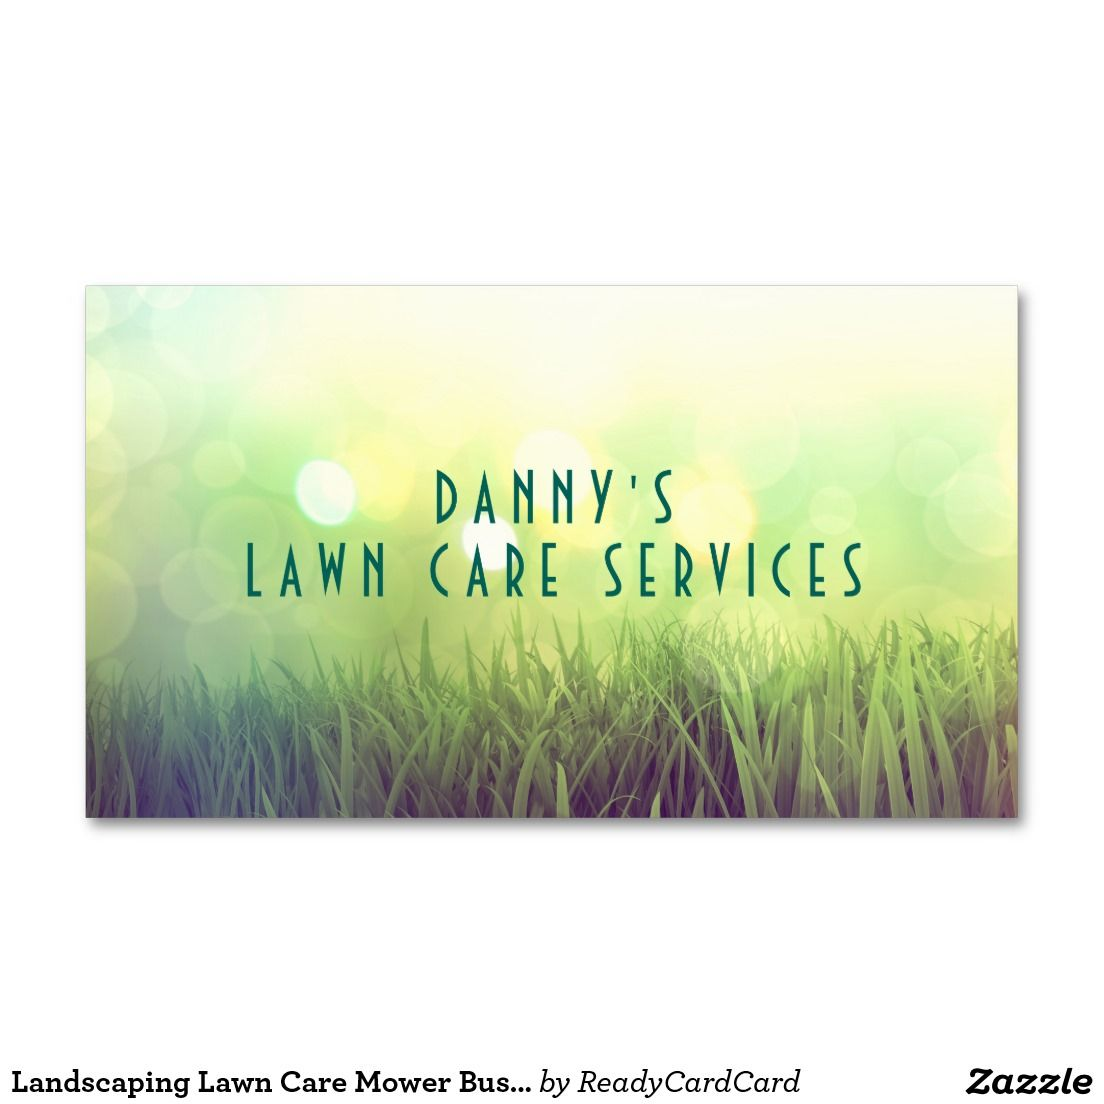 Landscaping Lawn Care Mower Business Card Template | Lawn care, Card ...